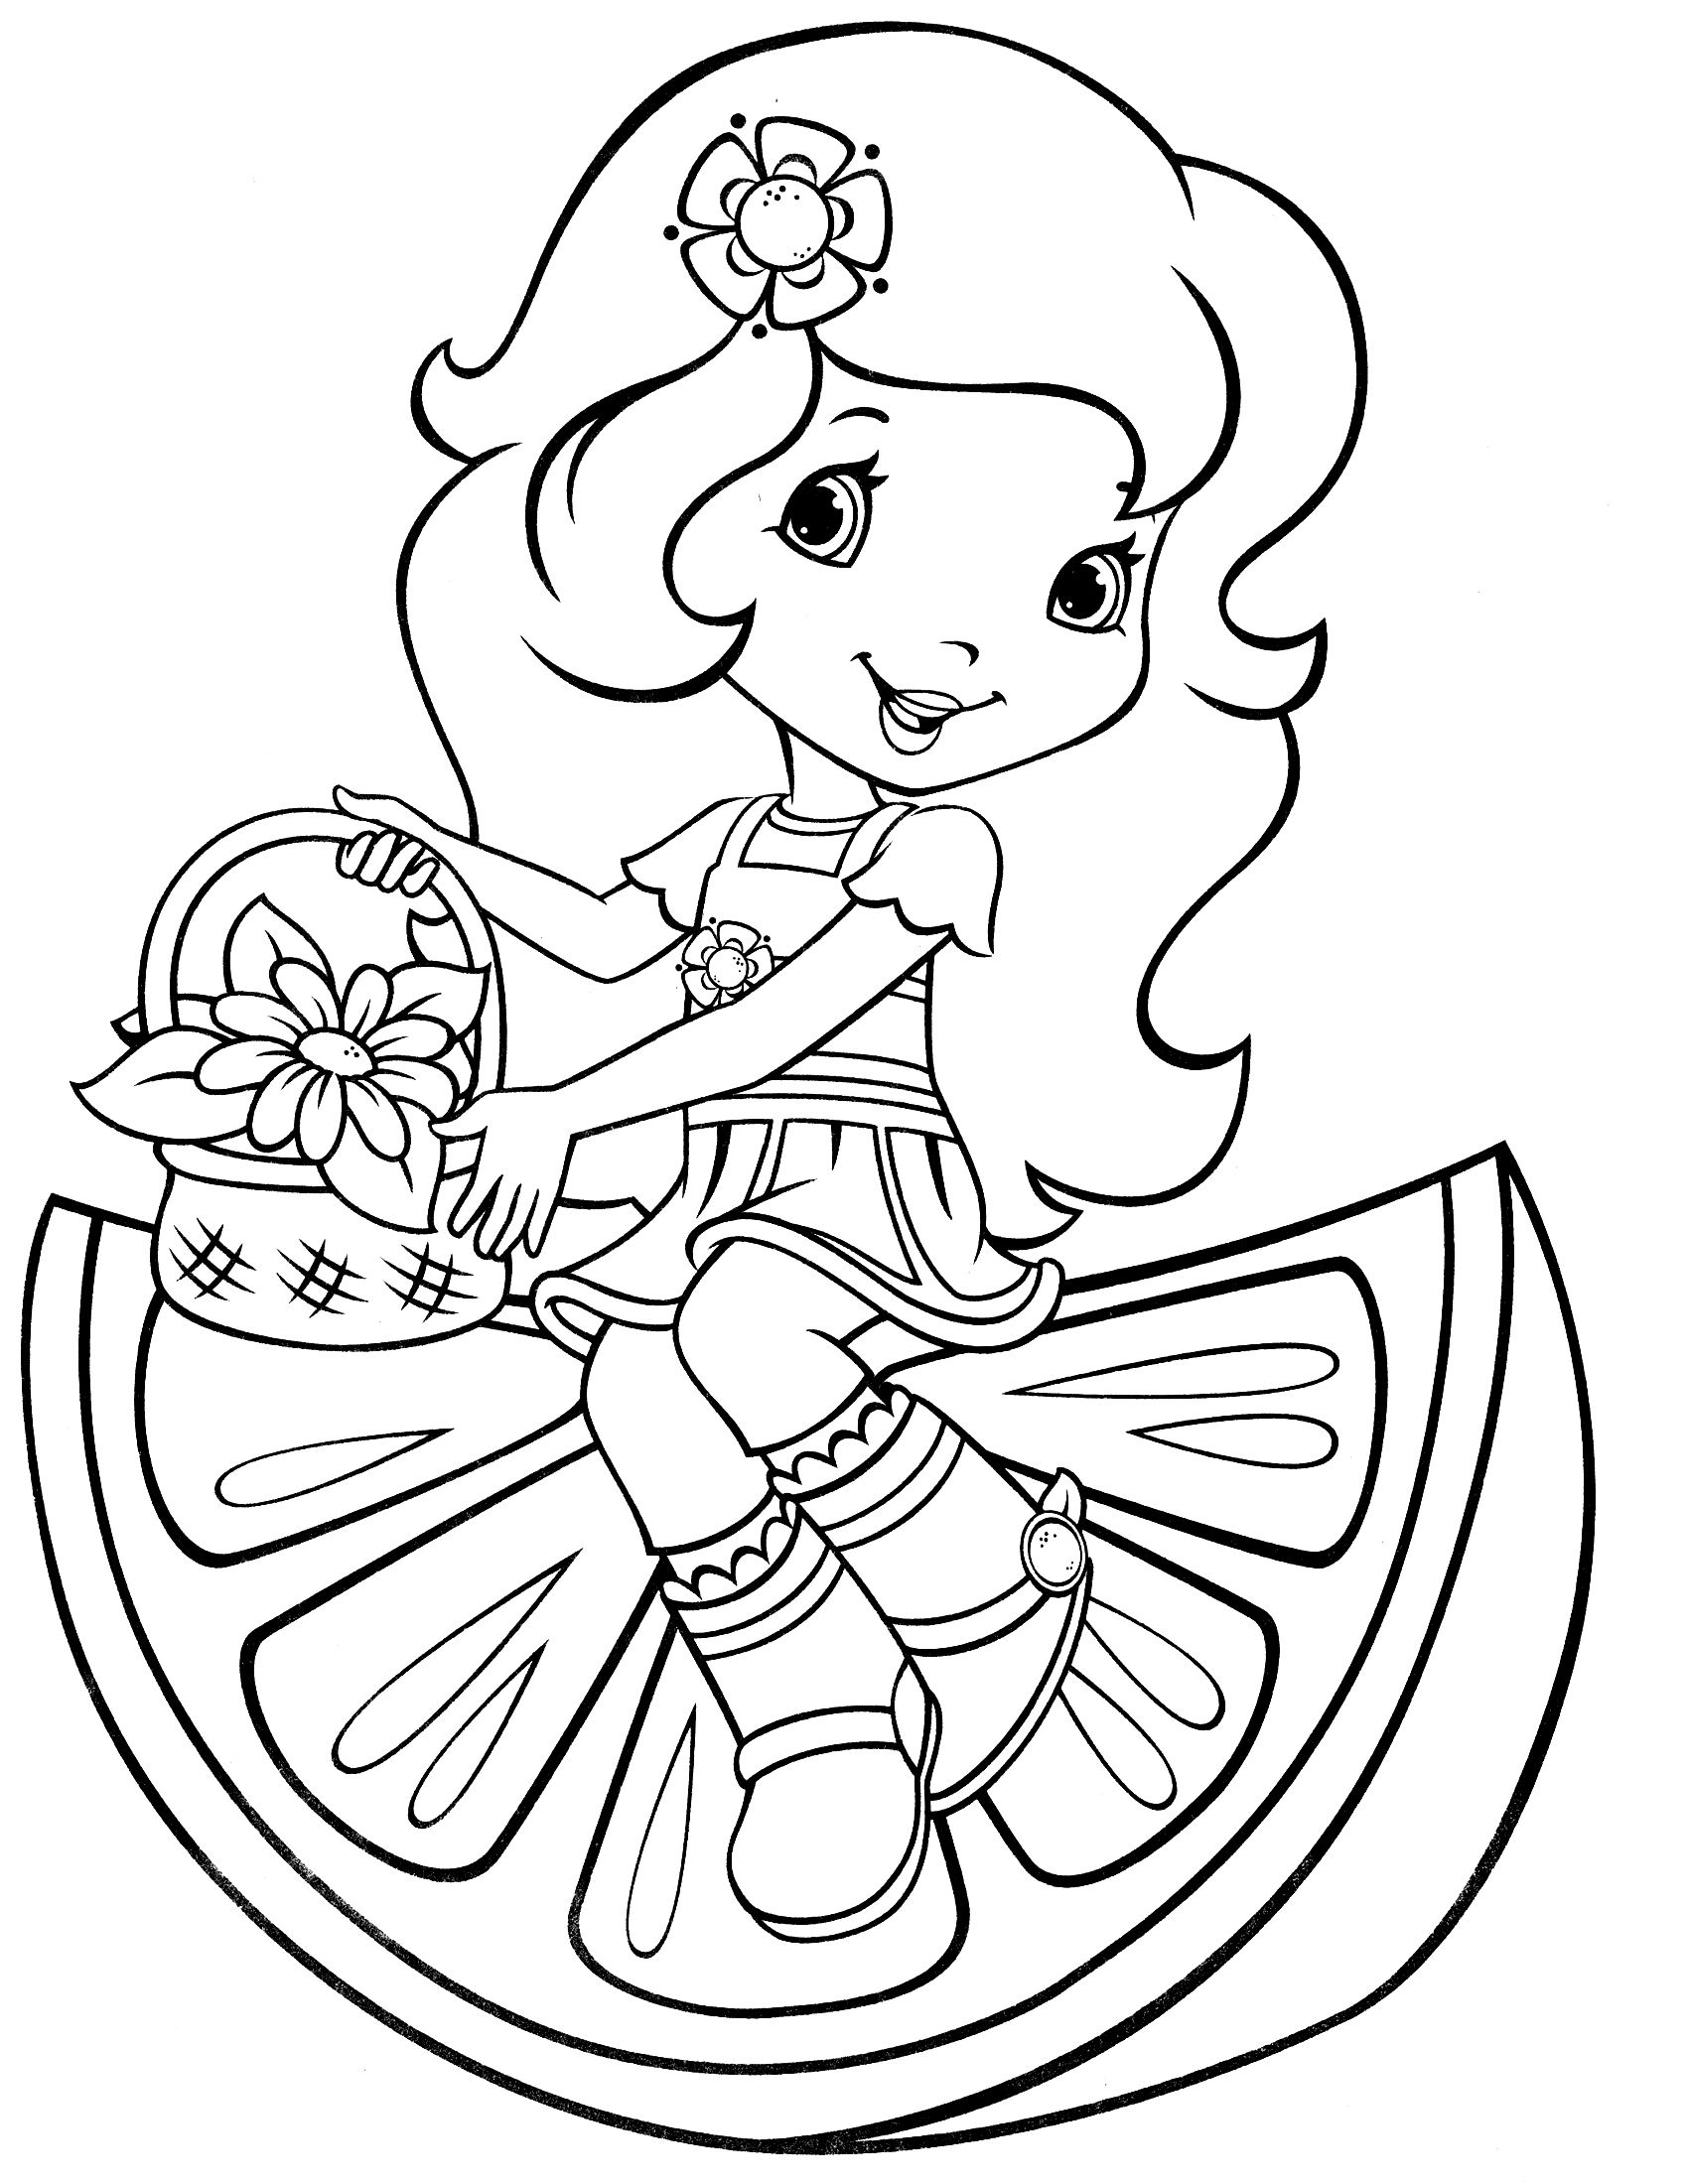 Strawberry Shortcake Coloring Page   Coloring   Coloring